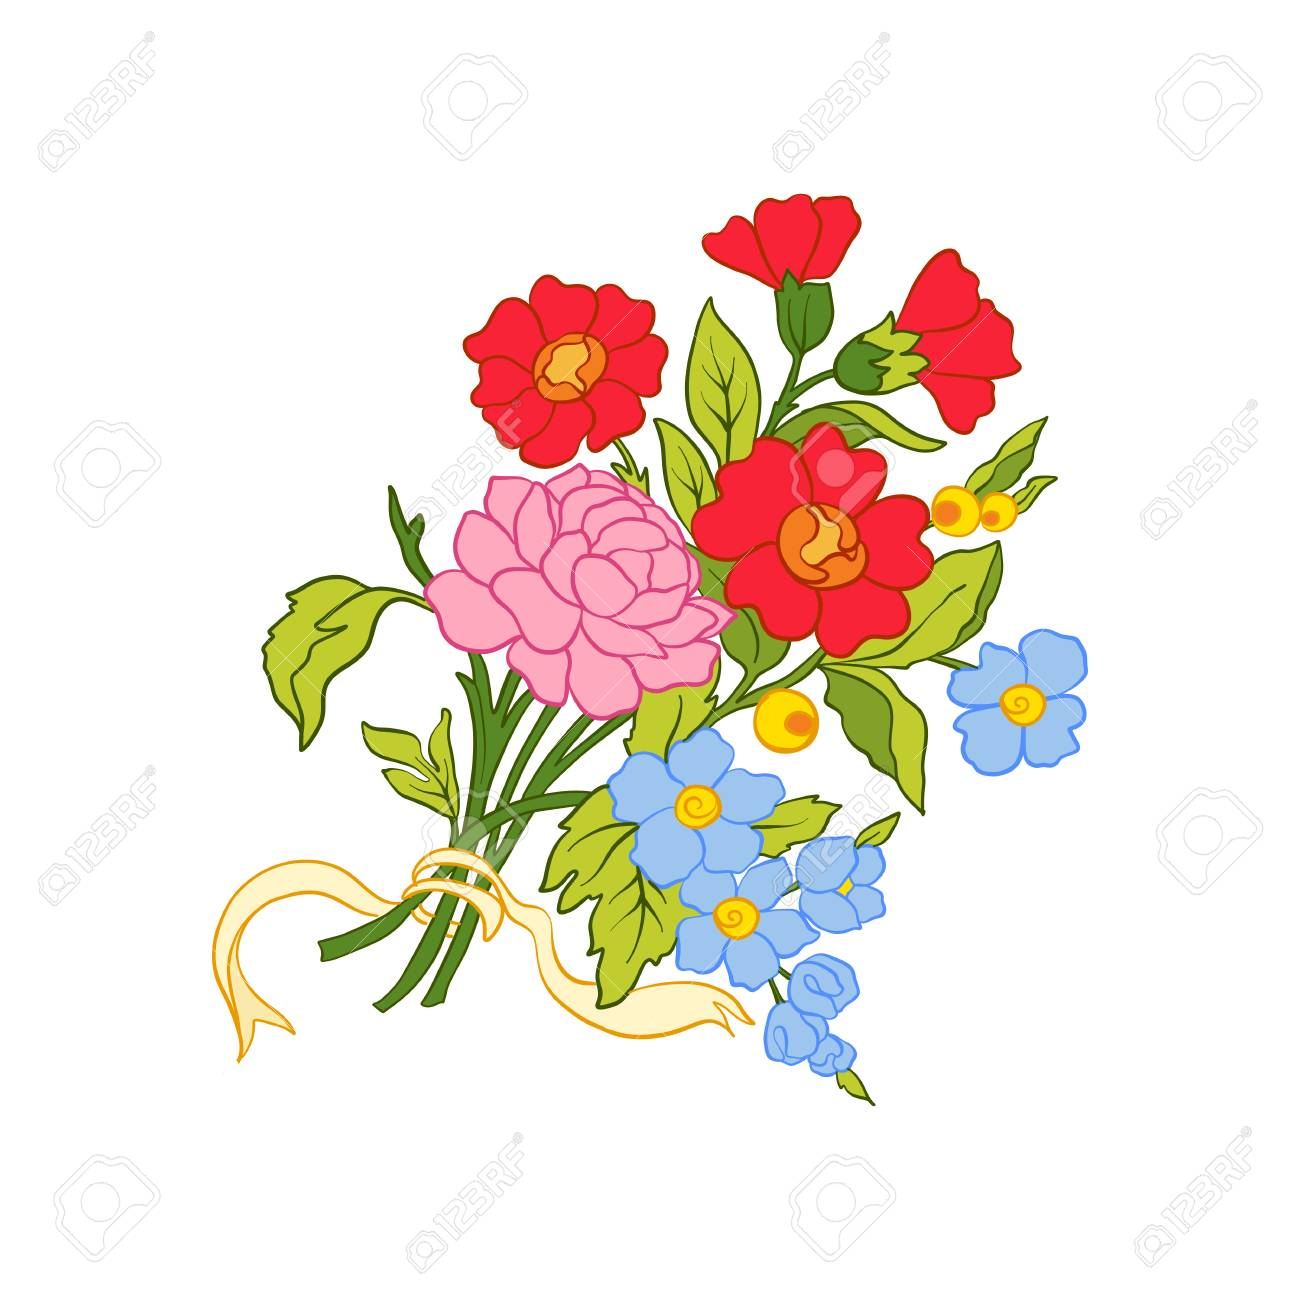 colored vintage flowers bouquet or pattern royalty free cliparts rh 123rf com vintage flower vector pattern vintage flower vector png